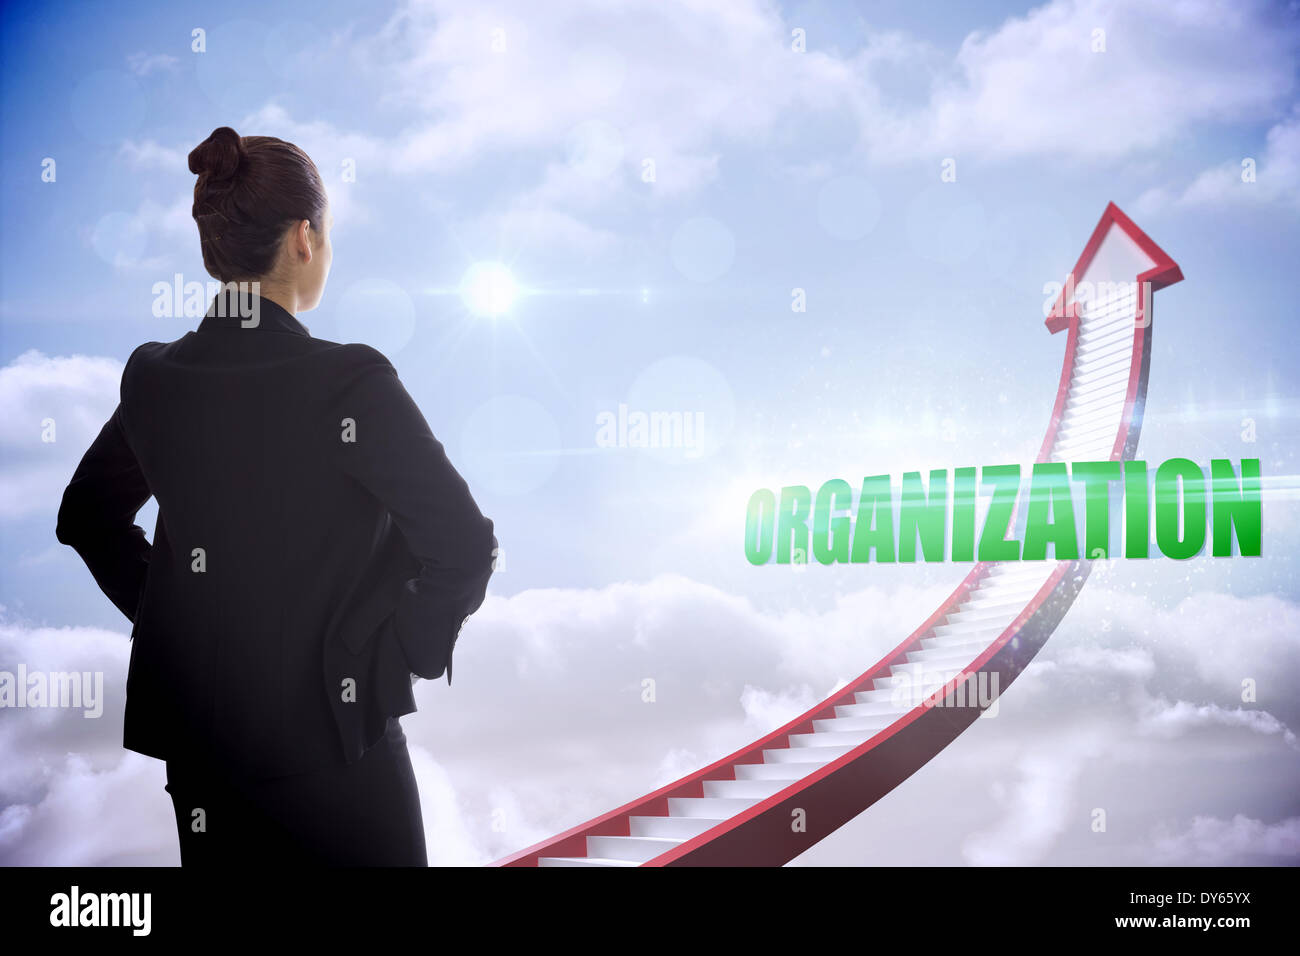 Organization against red stairs arrow pointing up against sky - Stock Photo